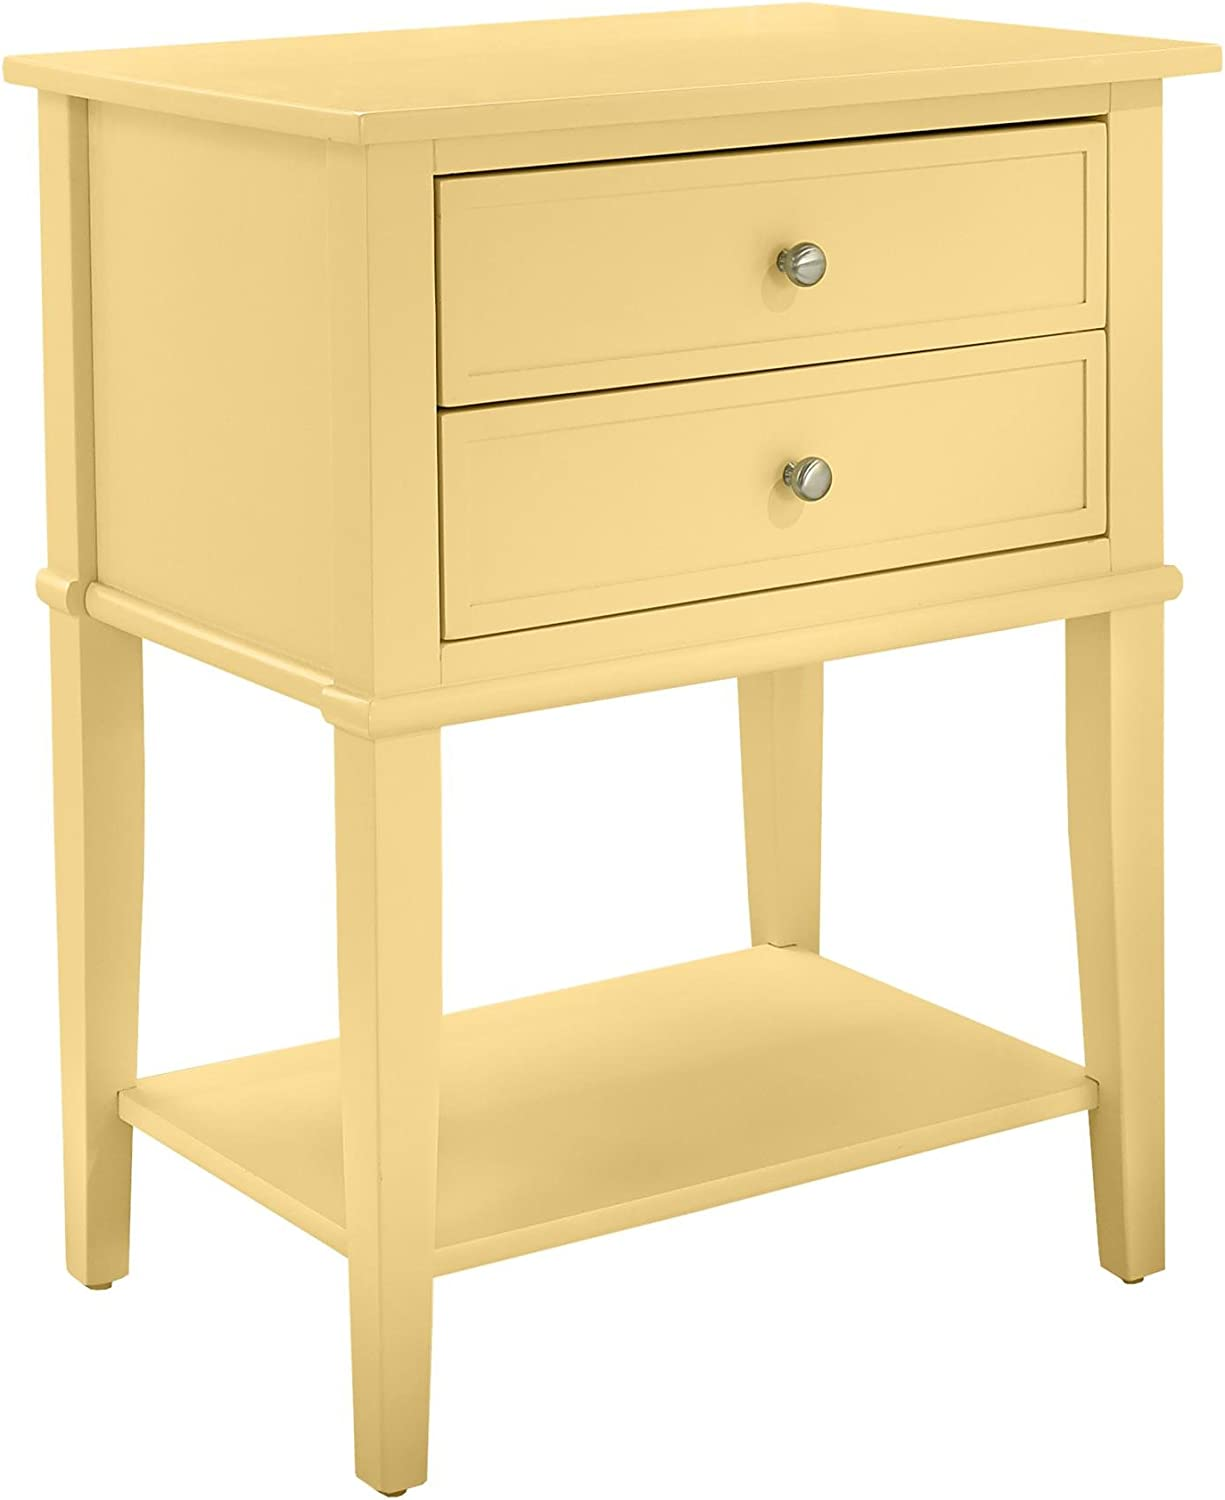 Ameriwood Home Franklin Accent Table 2 Drawers, Yellow